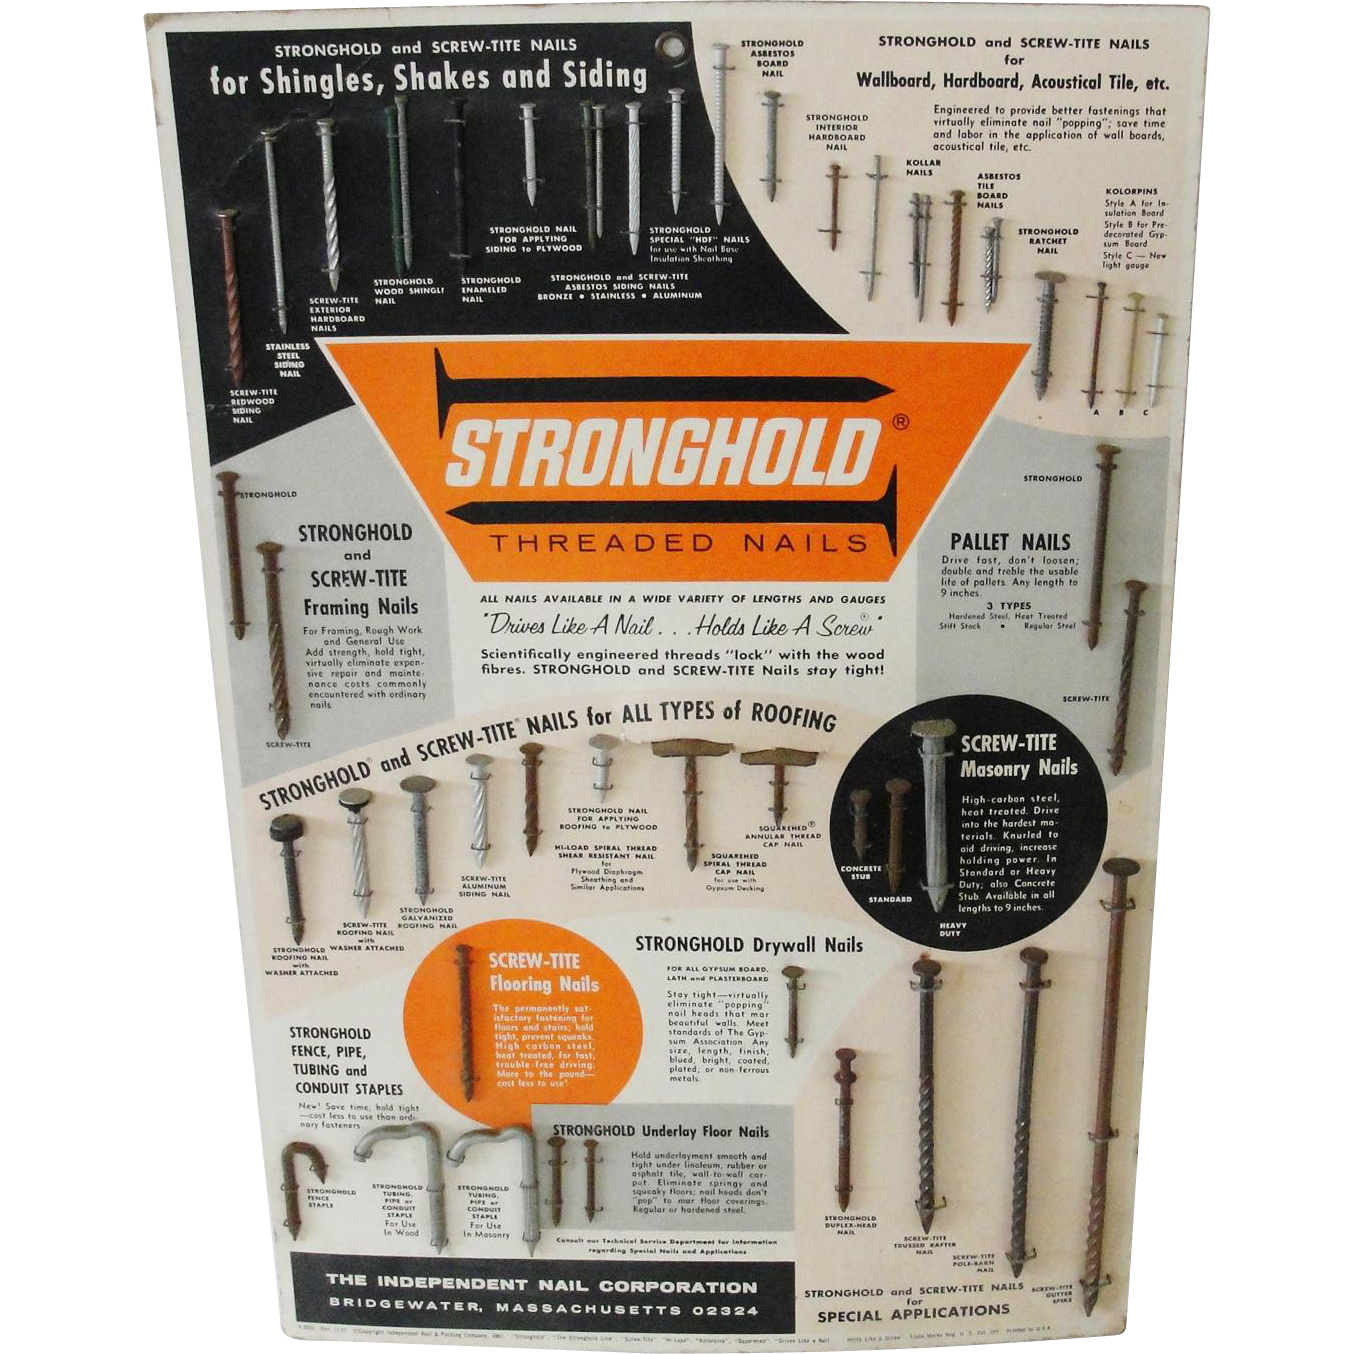 1961 Mid Century Vintage Hardware Store Display Stronghold Threaded Nails